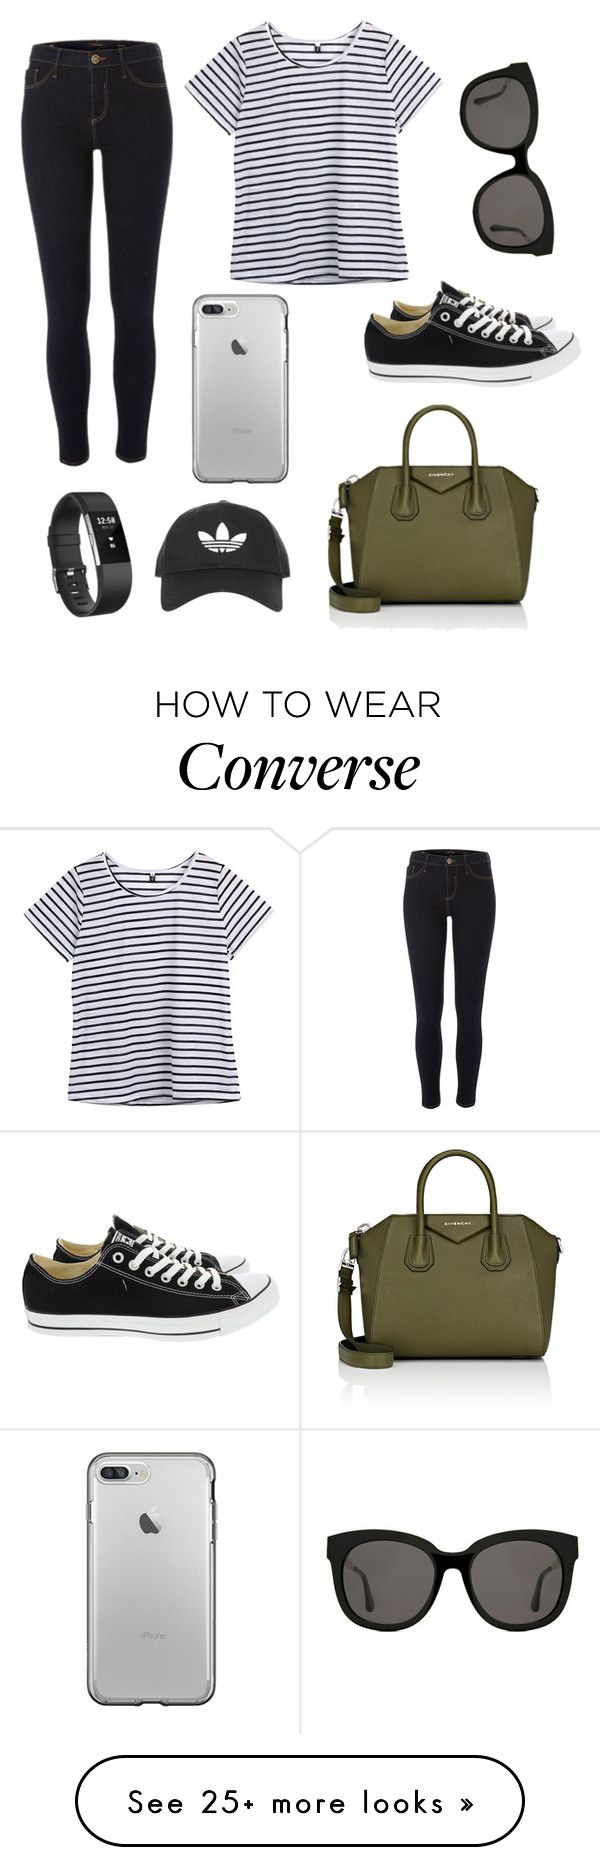 """Lazy days !!"" by emily1200 on Polyvore featuring River Island, Converse, Givenchy, Gentle Monster, Fitbit and Topshop"